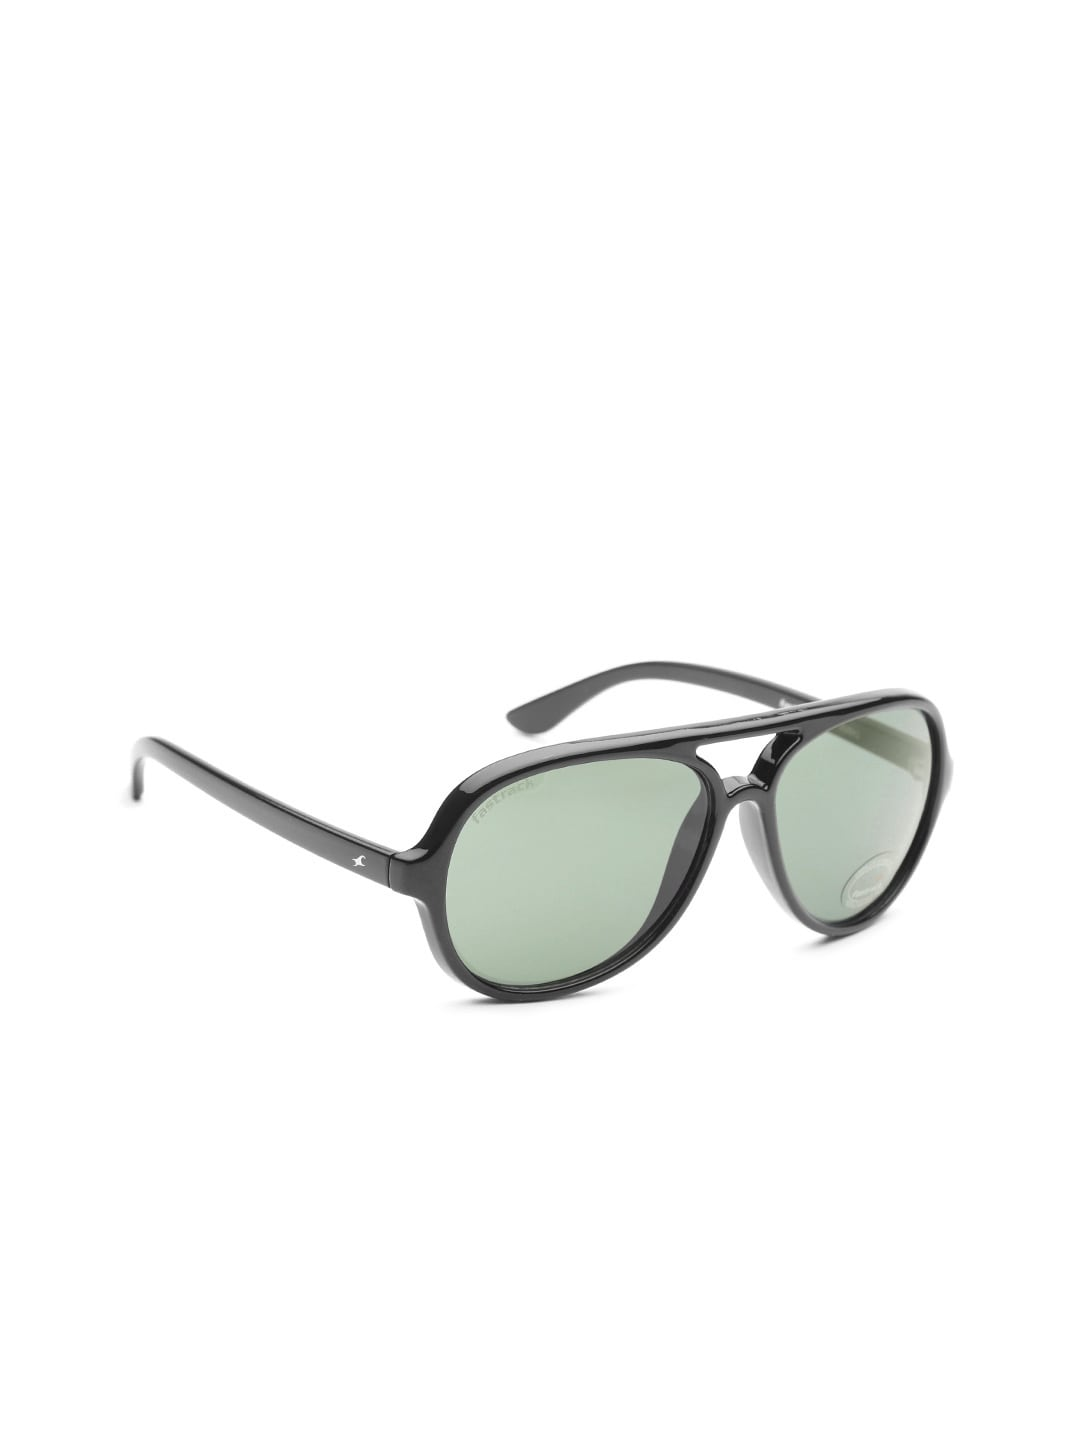 1e5fd5bec92 Sunglasses - Buy Shades for Men and Women Online in India